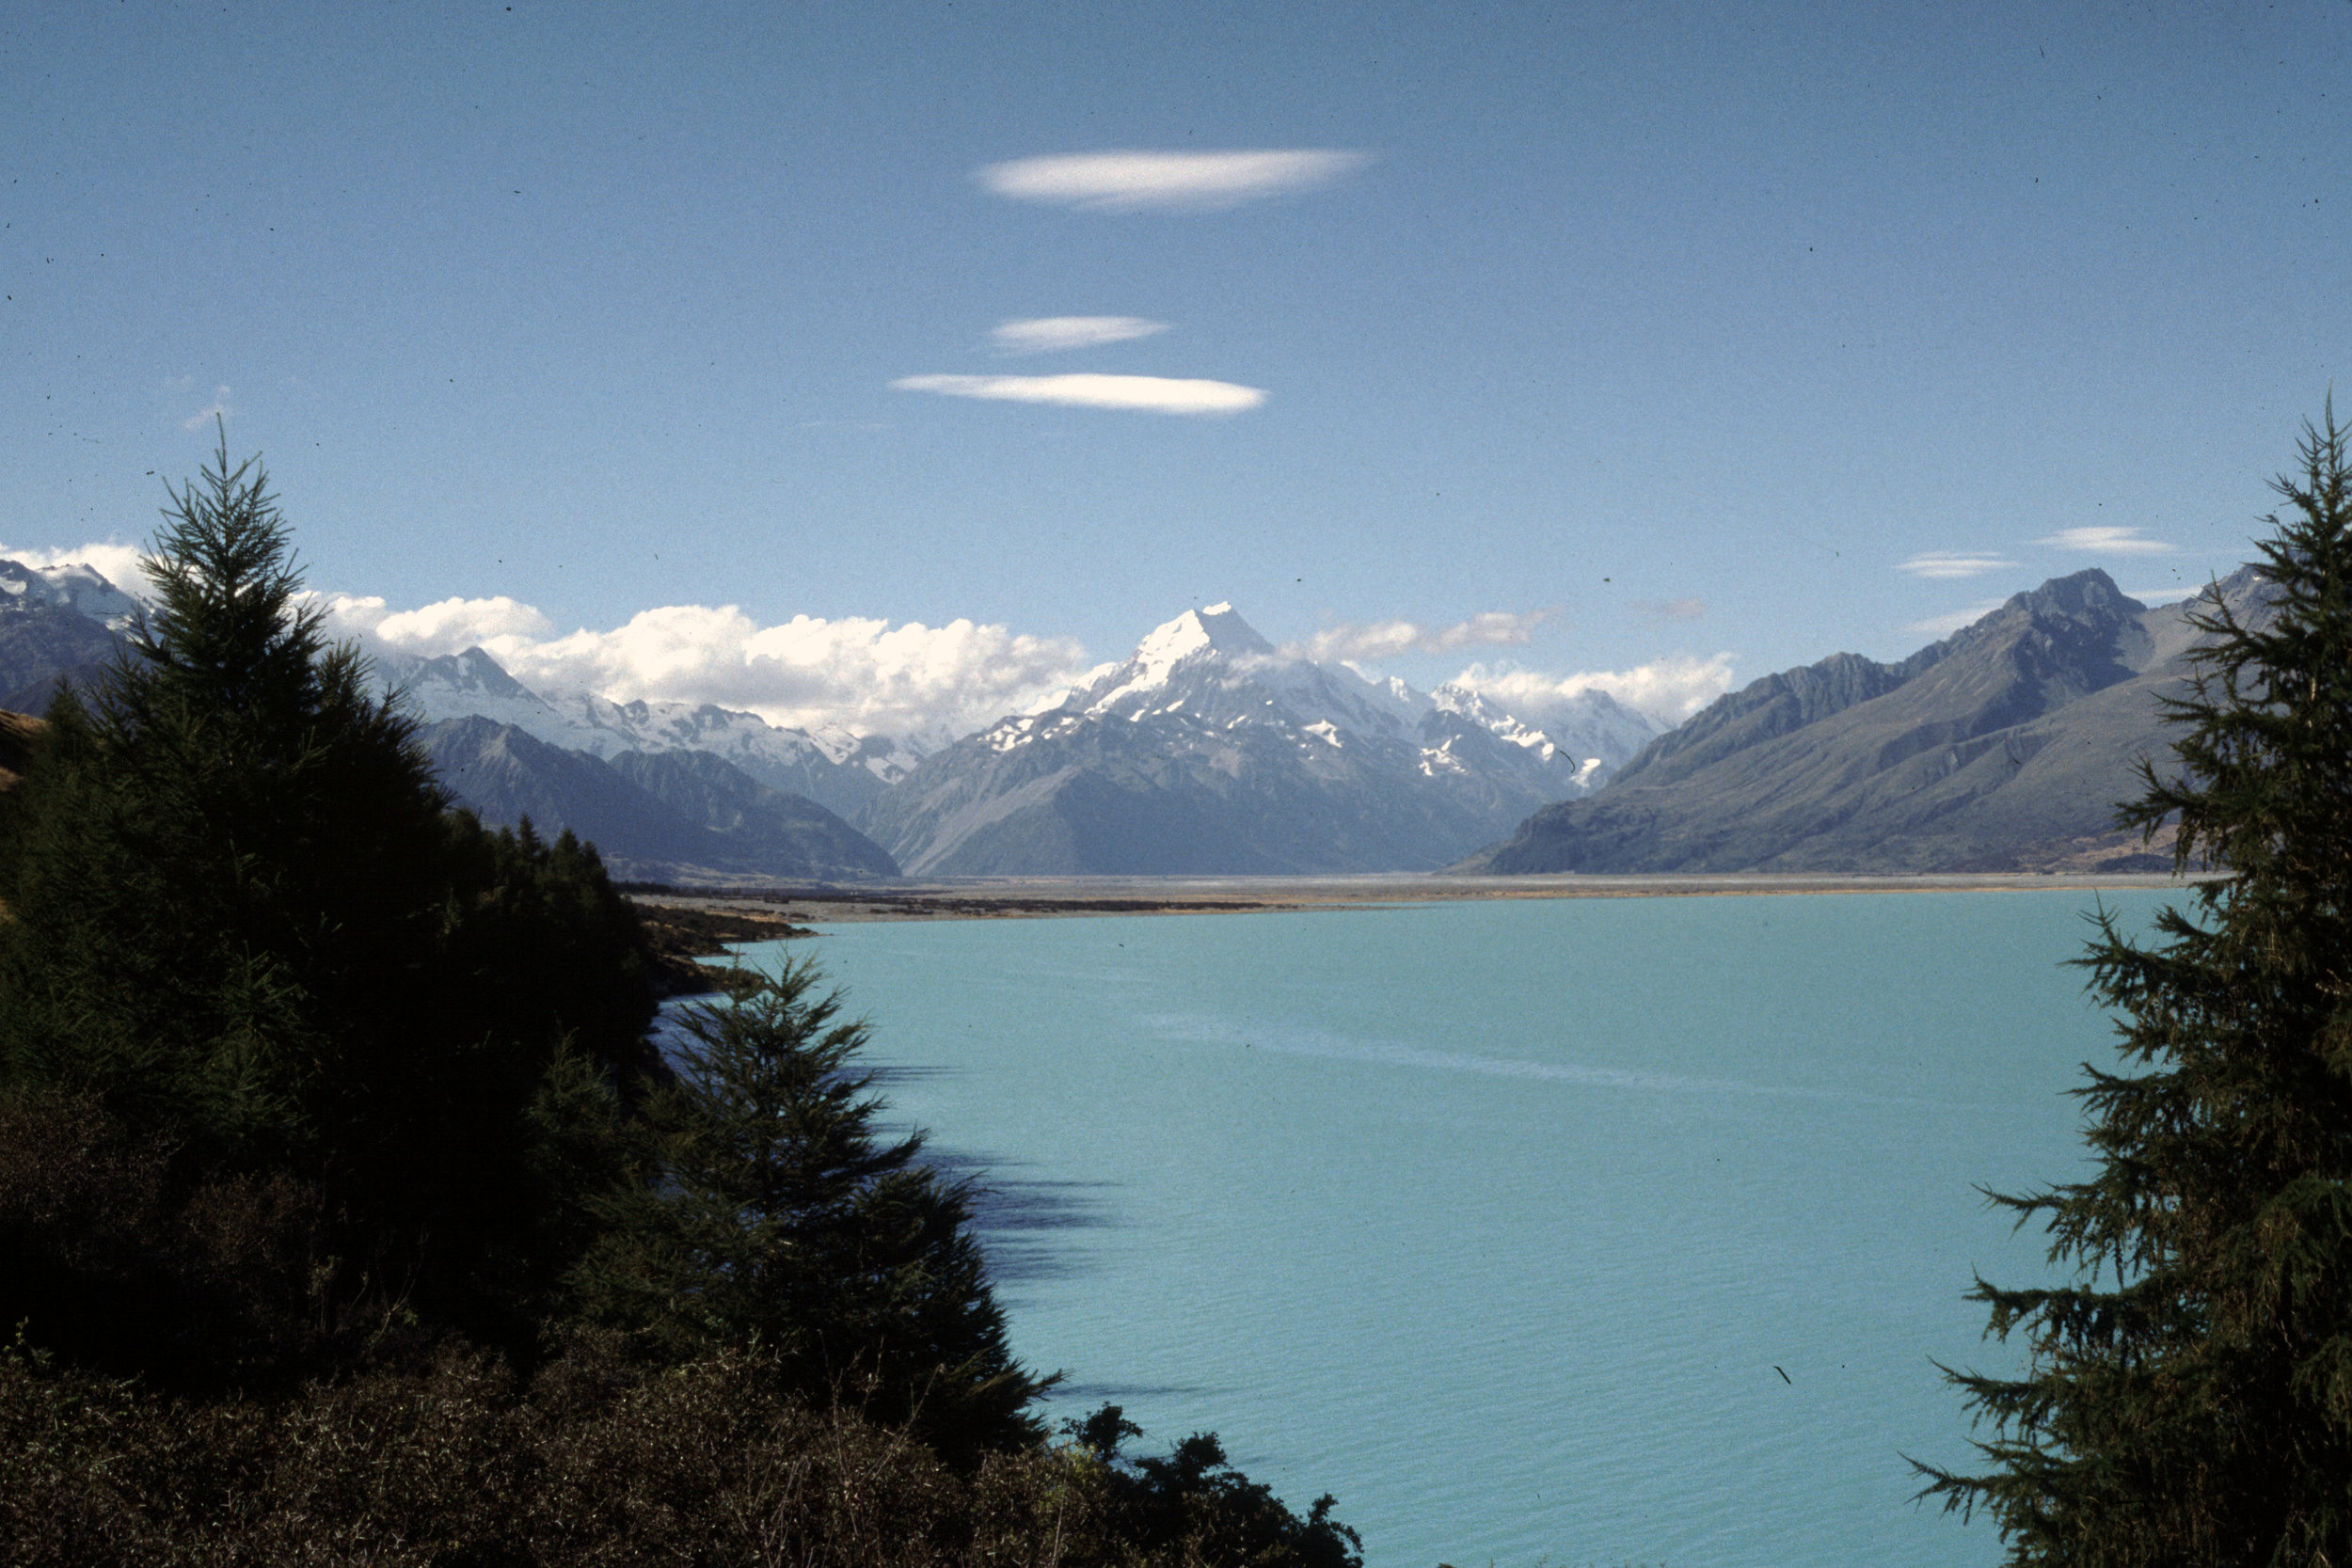 Mount Cook viewed from Lake Pukaki.